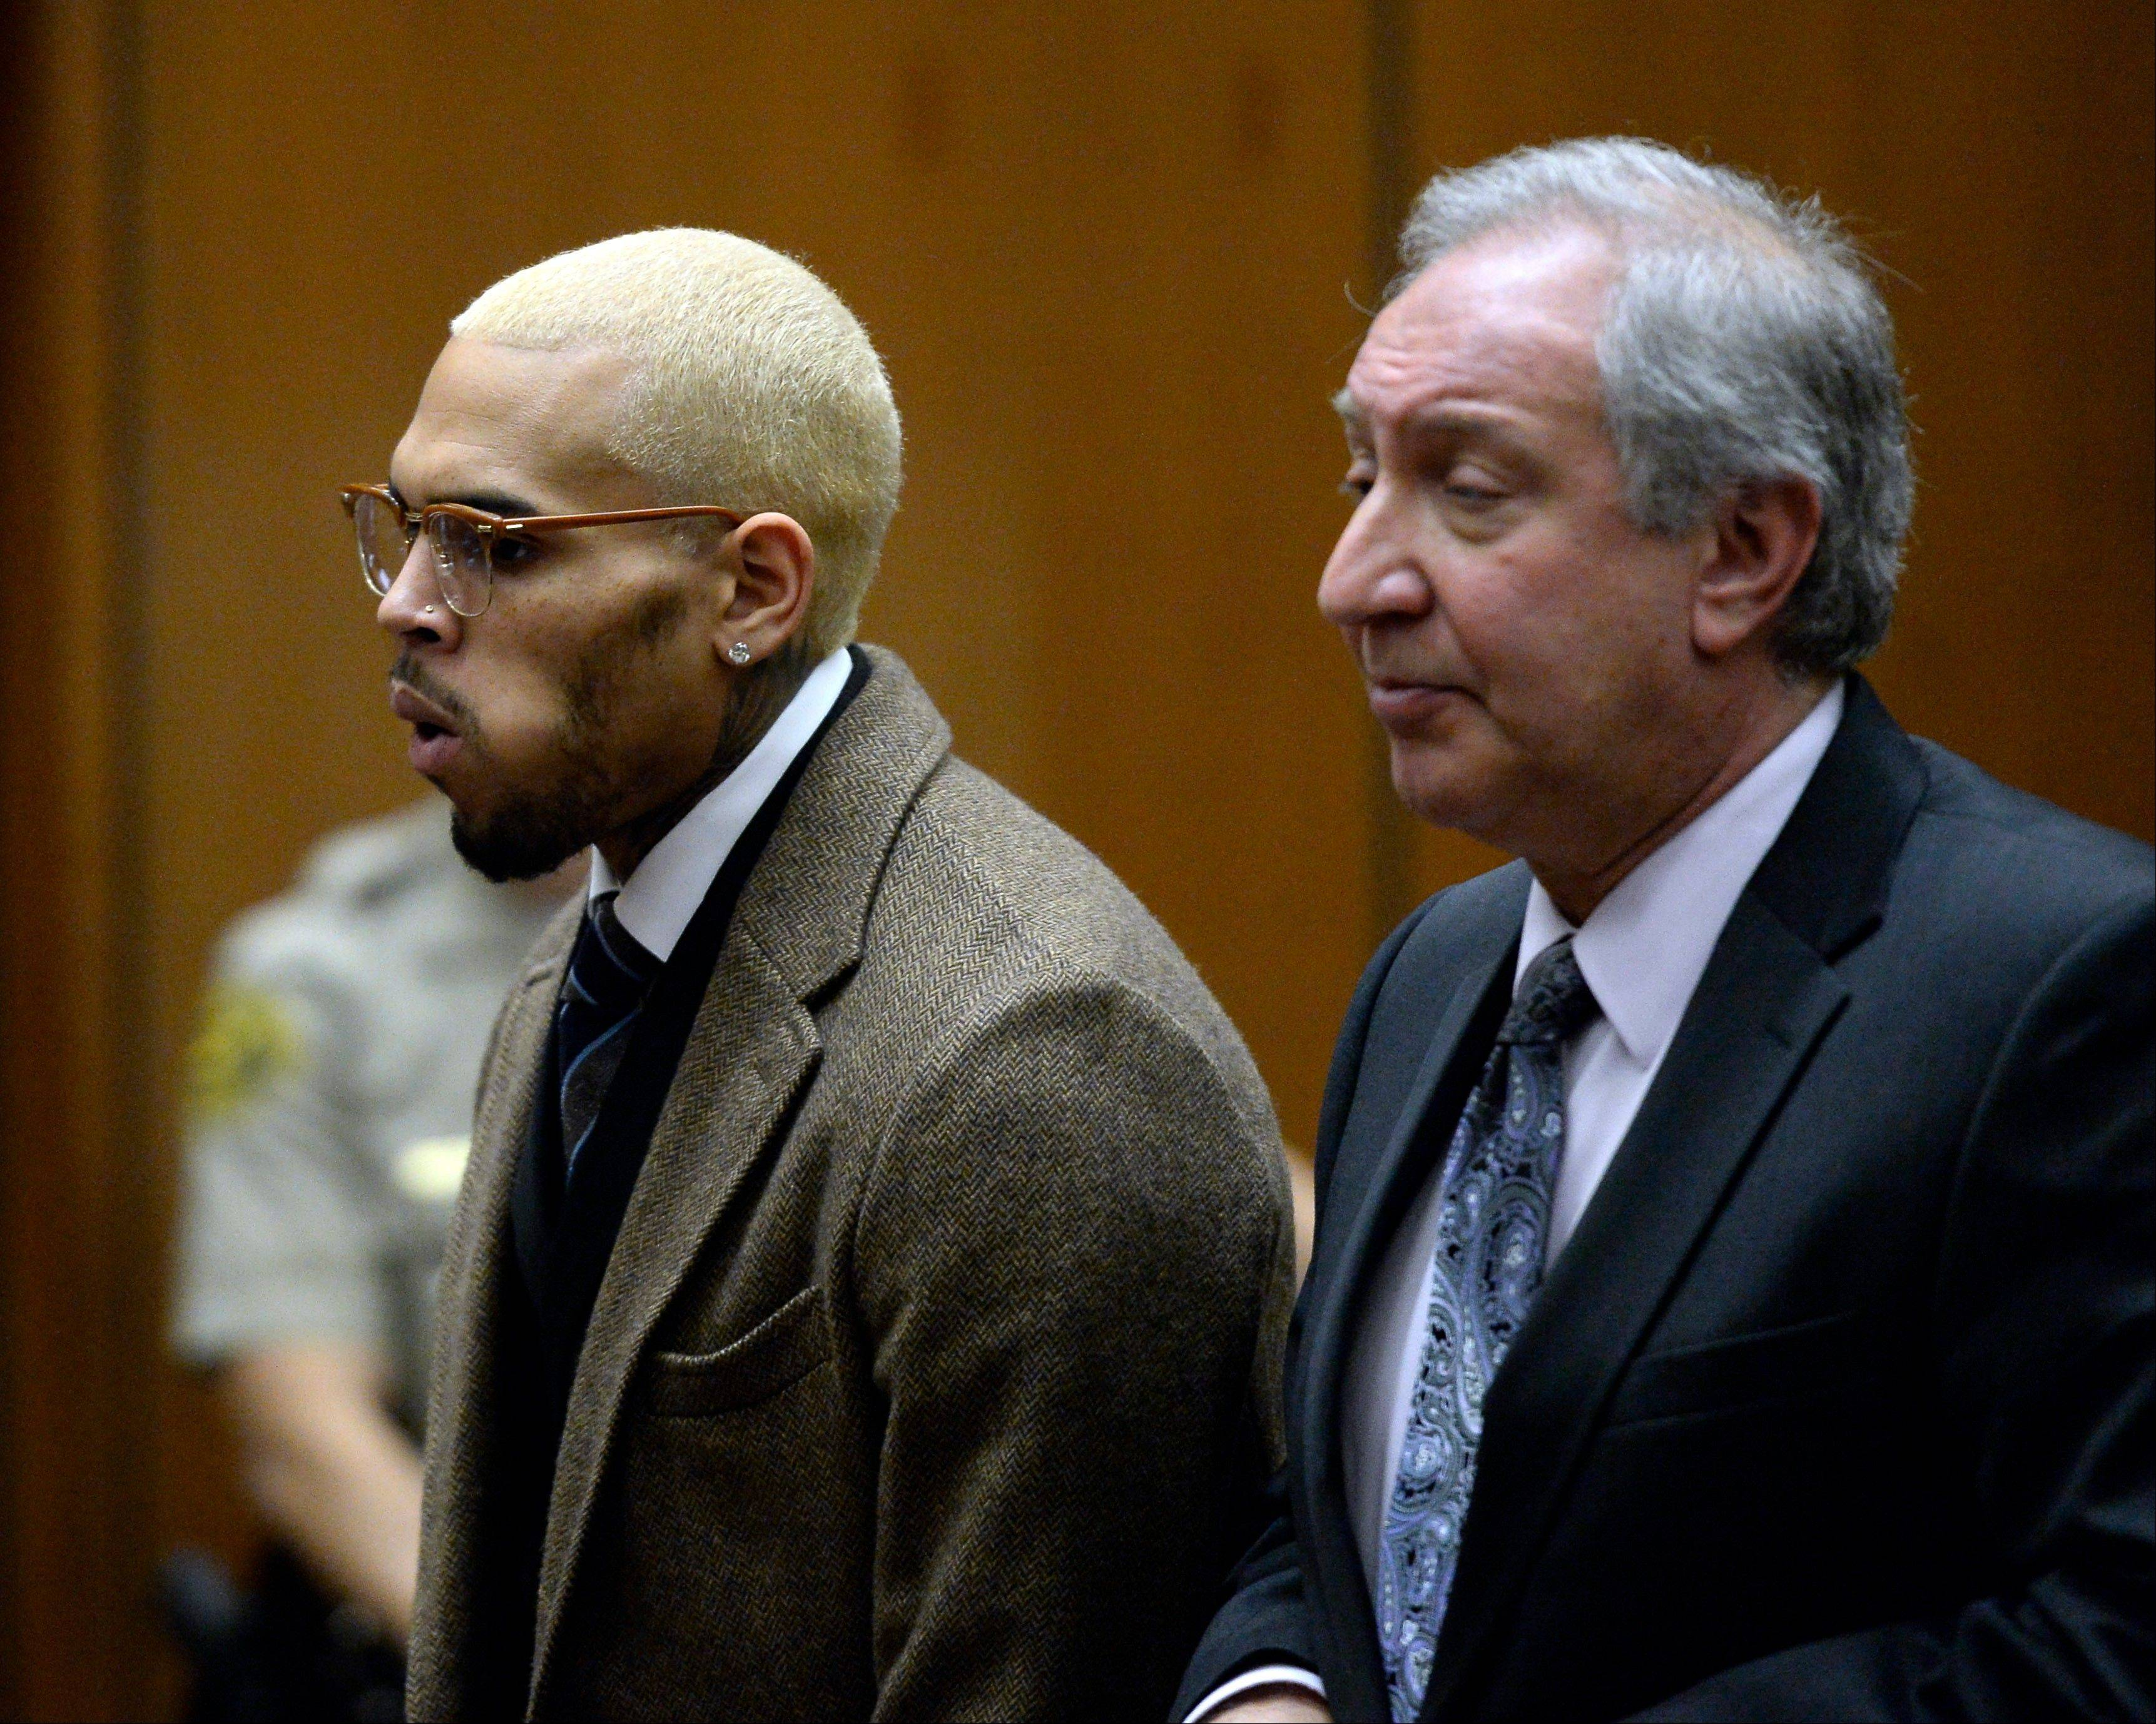 Singer Chris Brown, left, appears in court in December 2013 with his attorney Mark Geragos, in Los Angeles. Brown is expected to return to court for a status hearing in a case in which he's accused of hitting a man outside a Washington, D.C., hotel. The R&B singer was arrested in October after a man said the singer hit him outside the W Hotel. Brown and his bodyguard each face a misdemeanor assault charge.